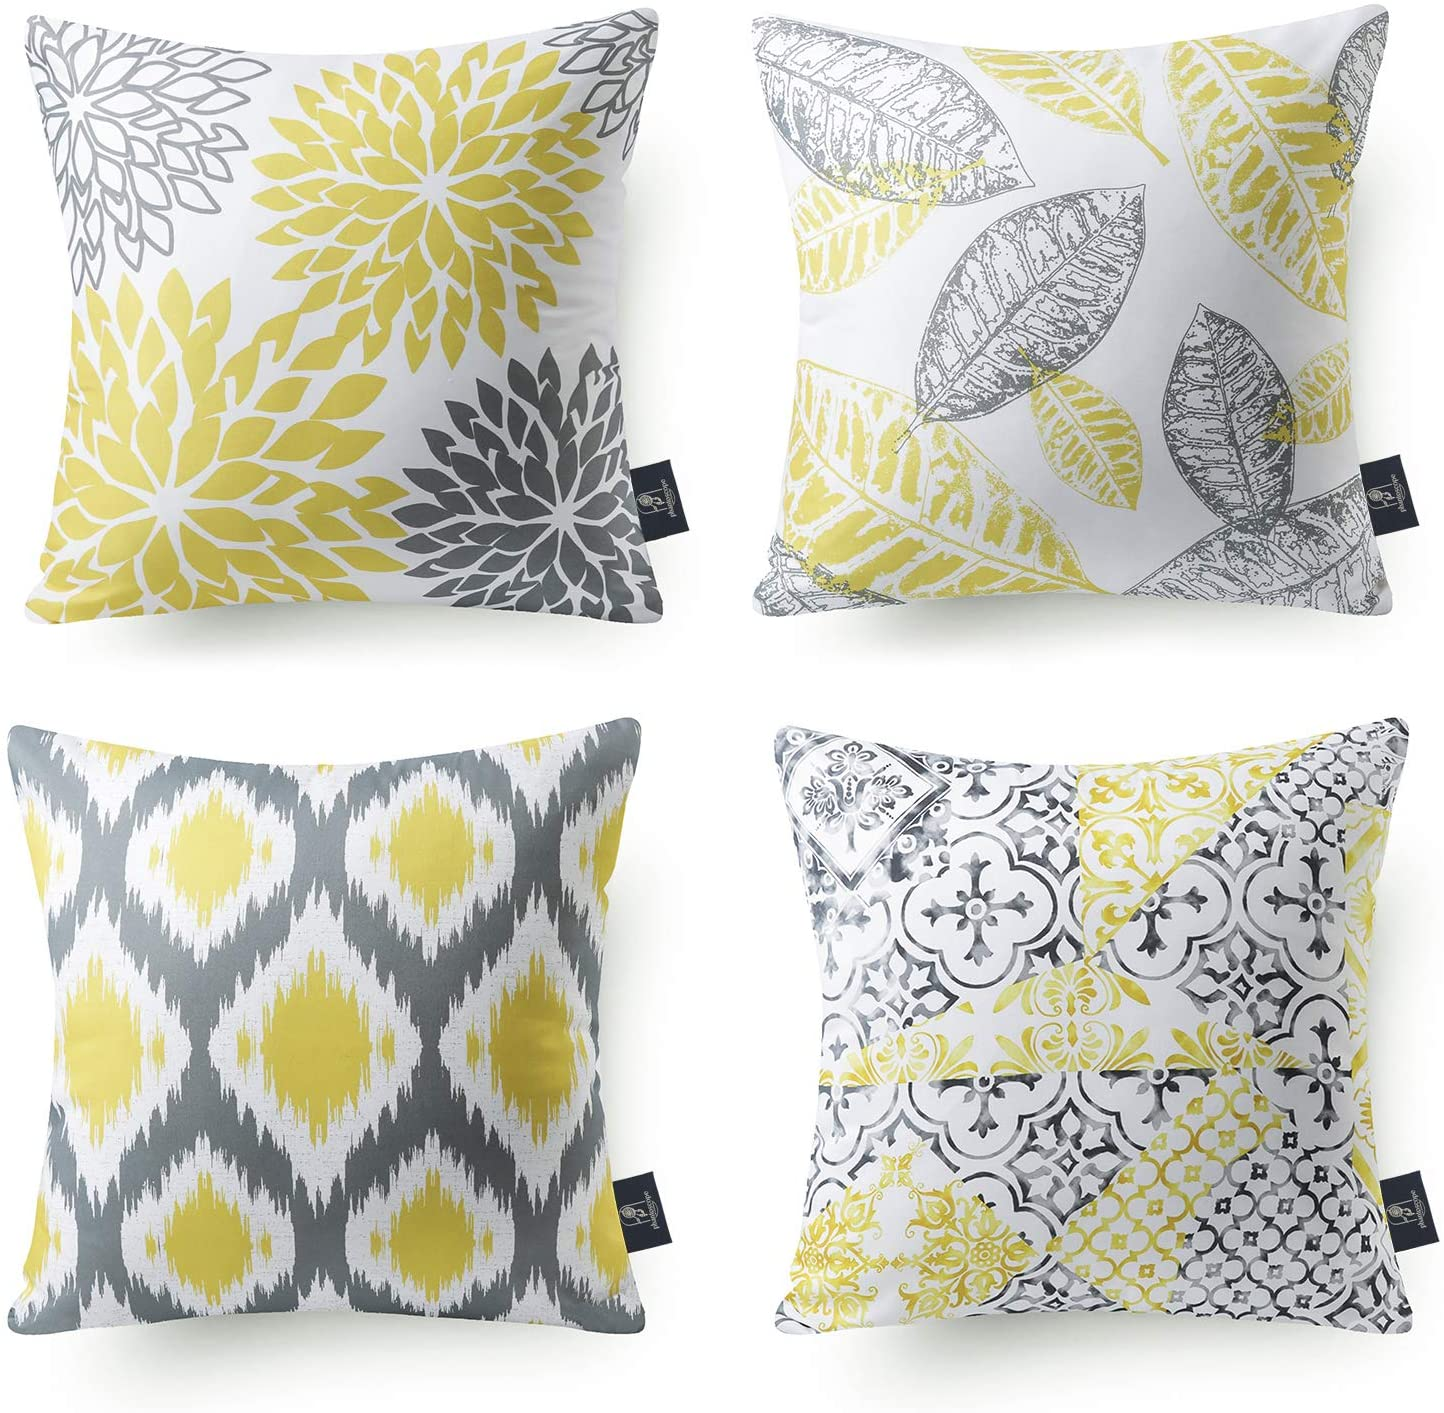 Phantoscope Set of 4 New Living Series Decorative Throw Pillow Case Cushion Cover, Yellow and Grey, 22 x 22 inches, 55 x 55 cm